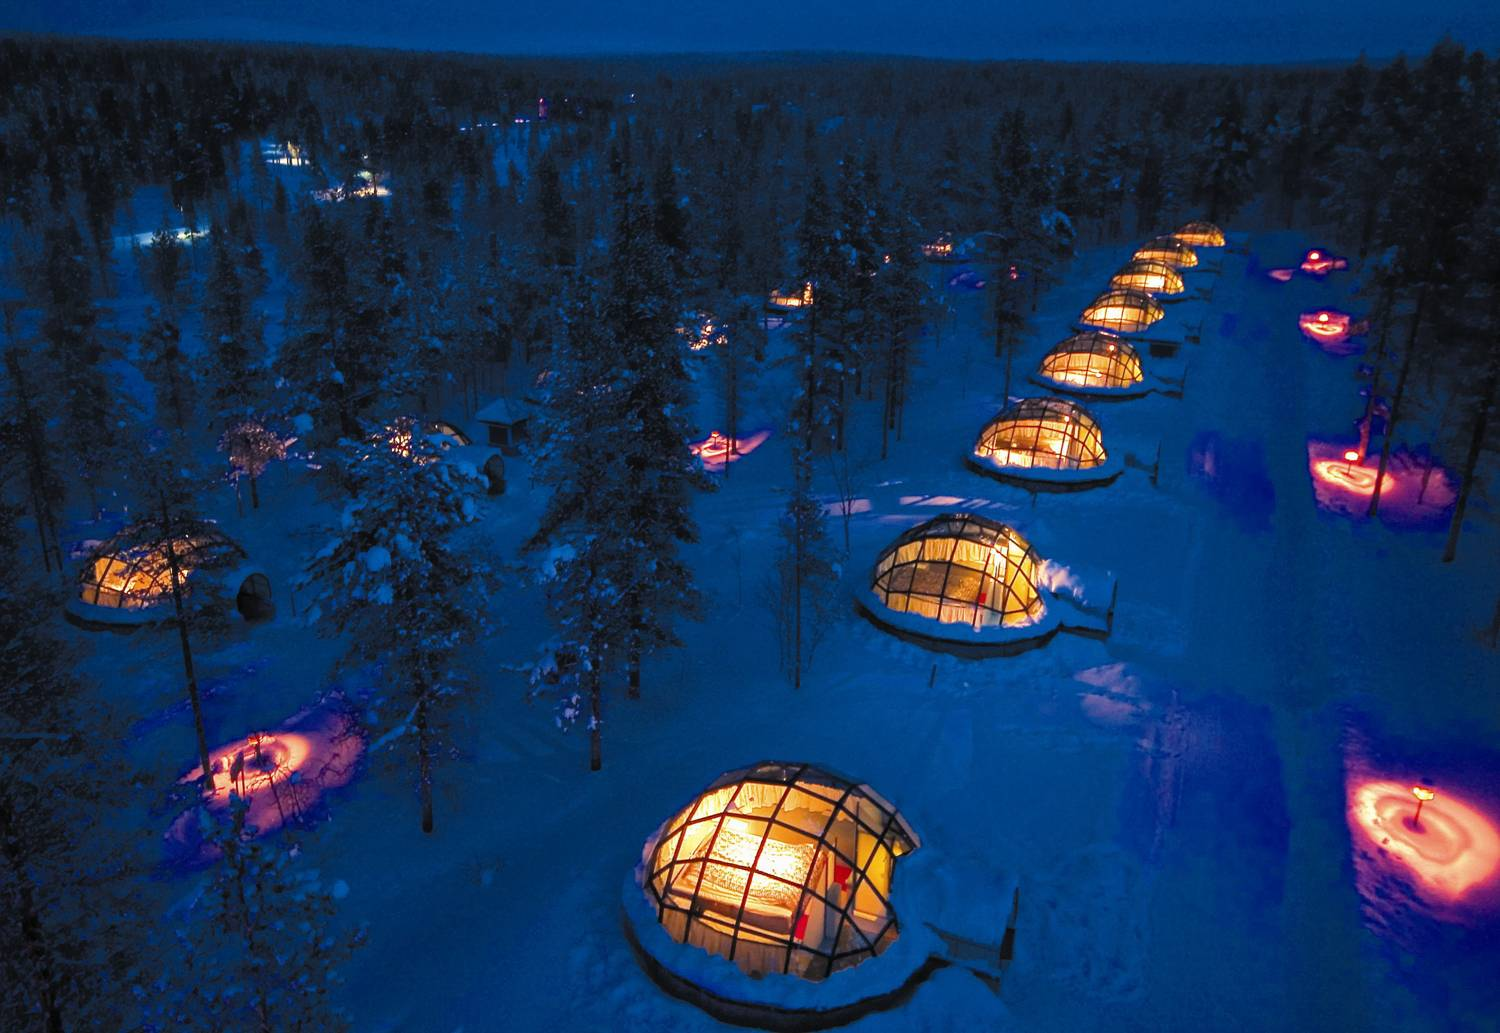 Heated Glass igloo Hotel rooms to prevent snow and ice build up